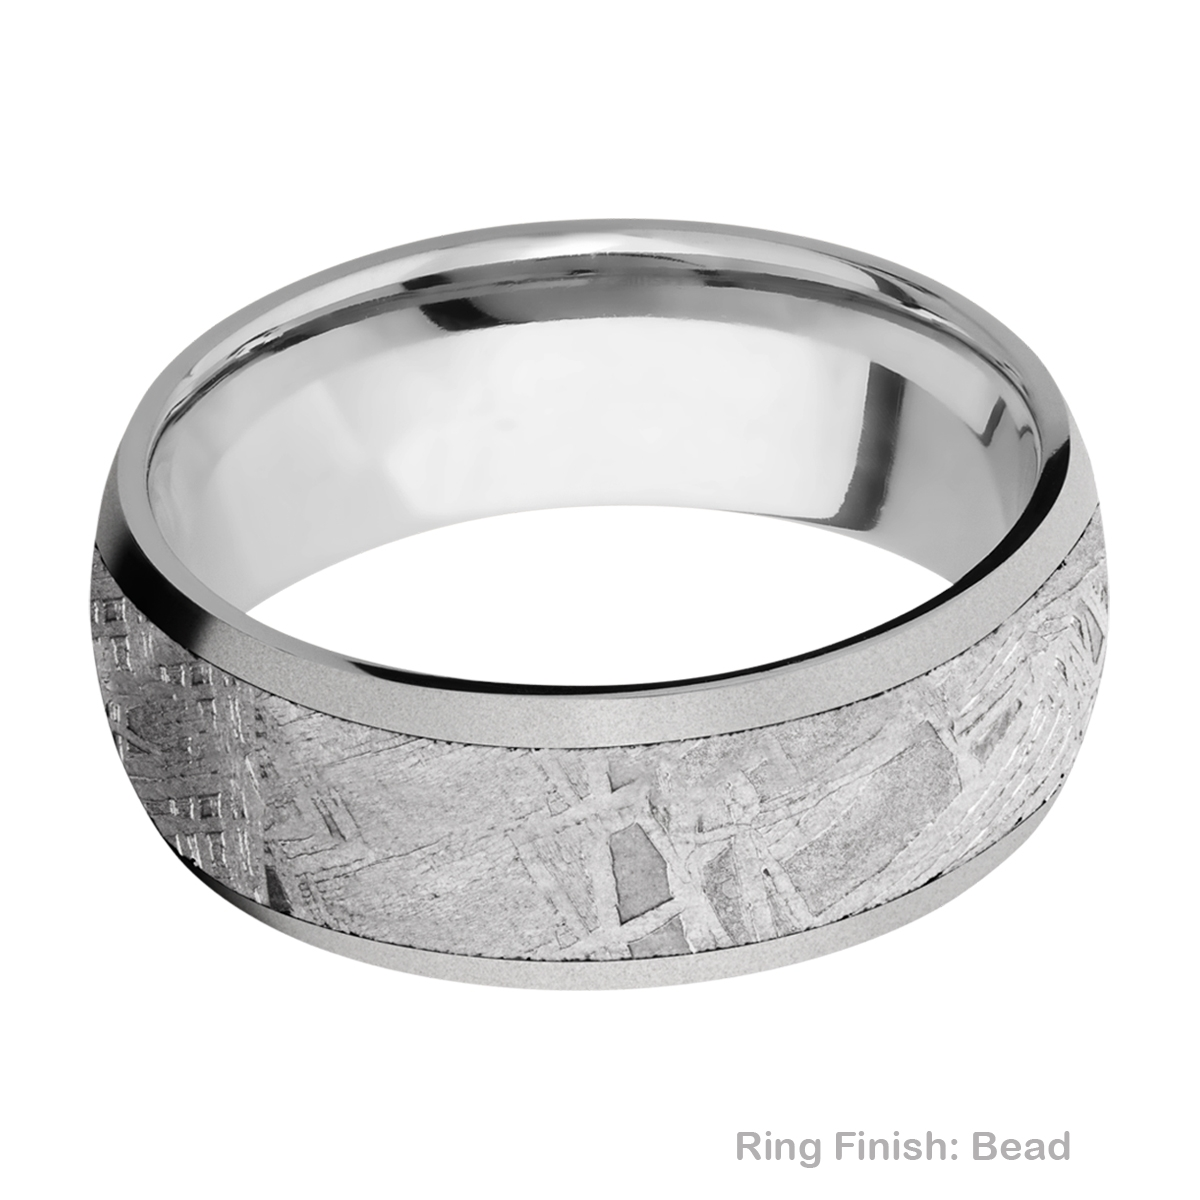 Lashbrook 8D16/METEORITE Titanium Wedding Ring or Band Alternative View 2